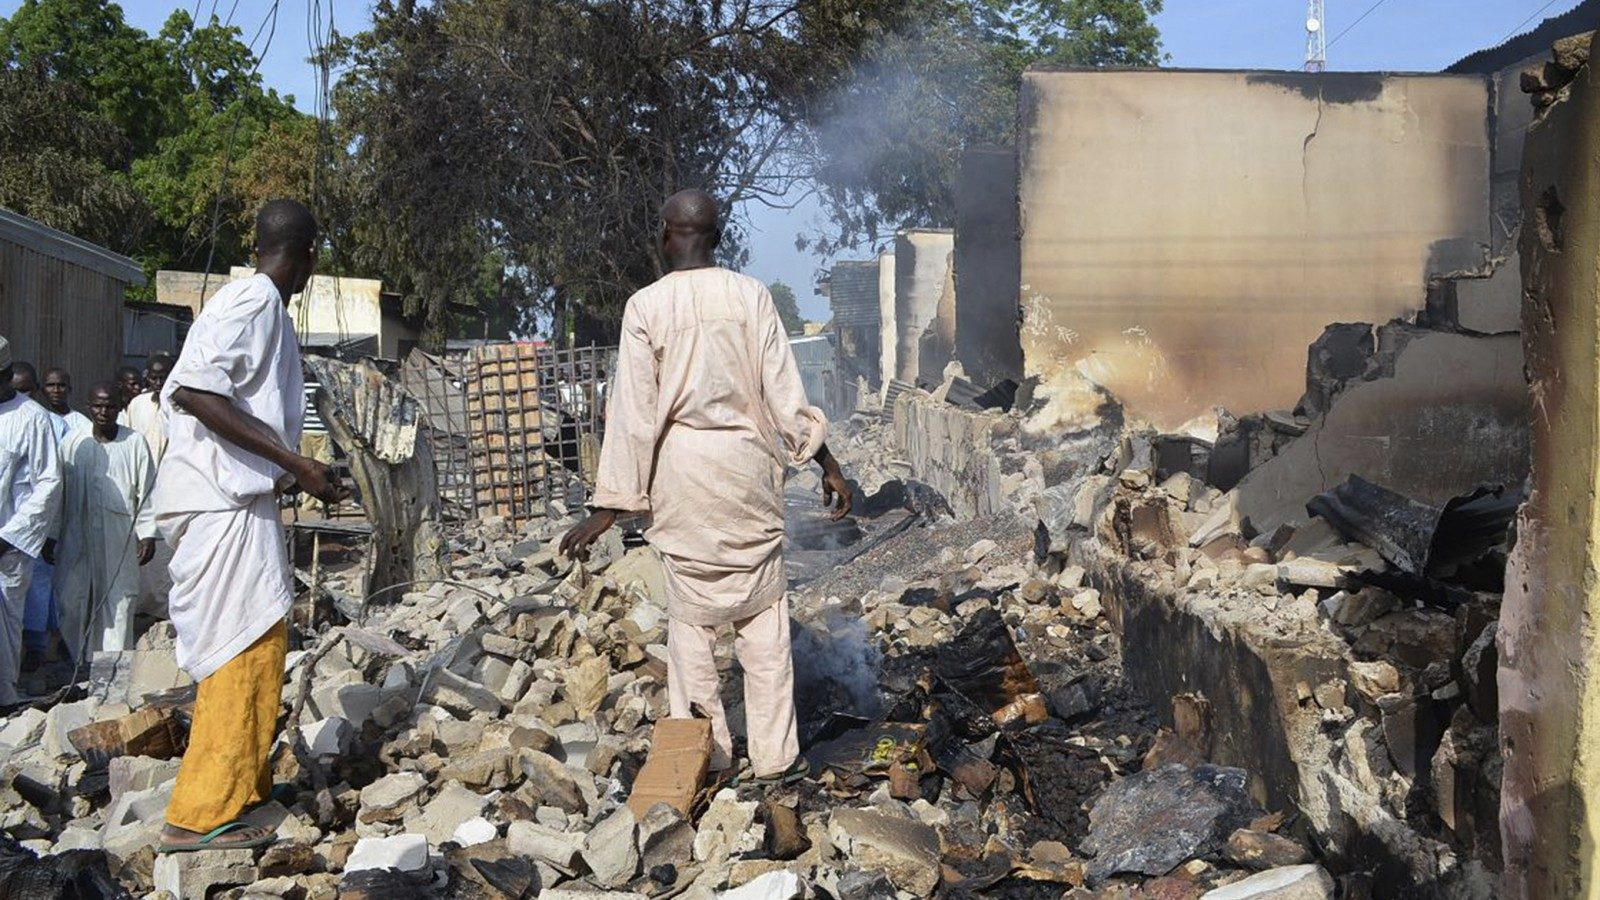 The UN Security Council has condemned the killing of at least 120 villagers in Borno state. In a statement on Wednesday, the UN complained that many people were also injured between 9 and 13 June, 2020.